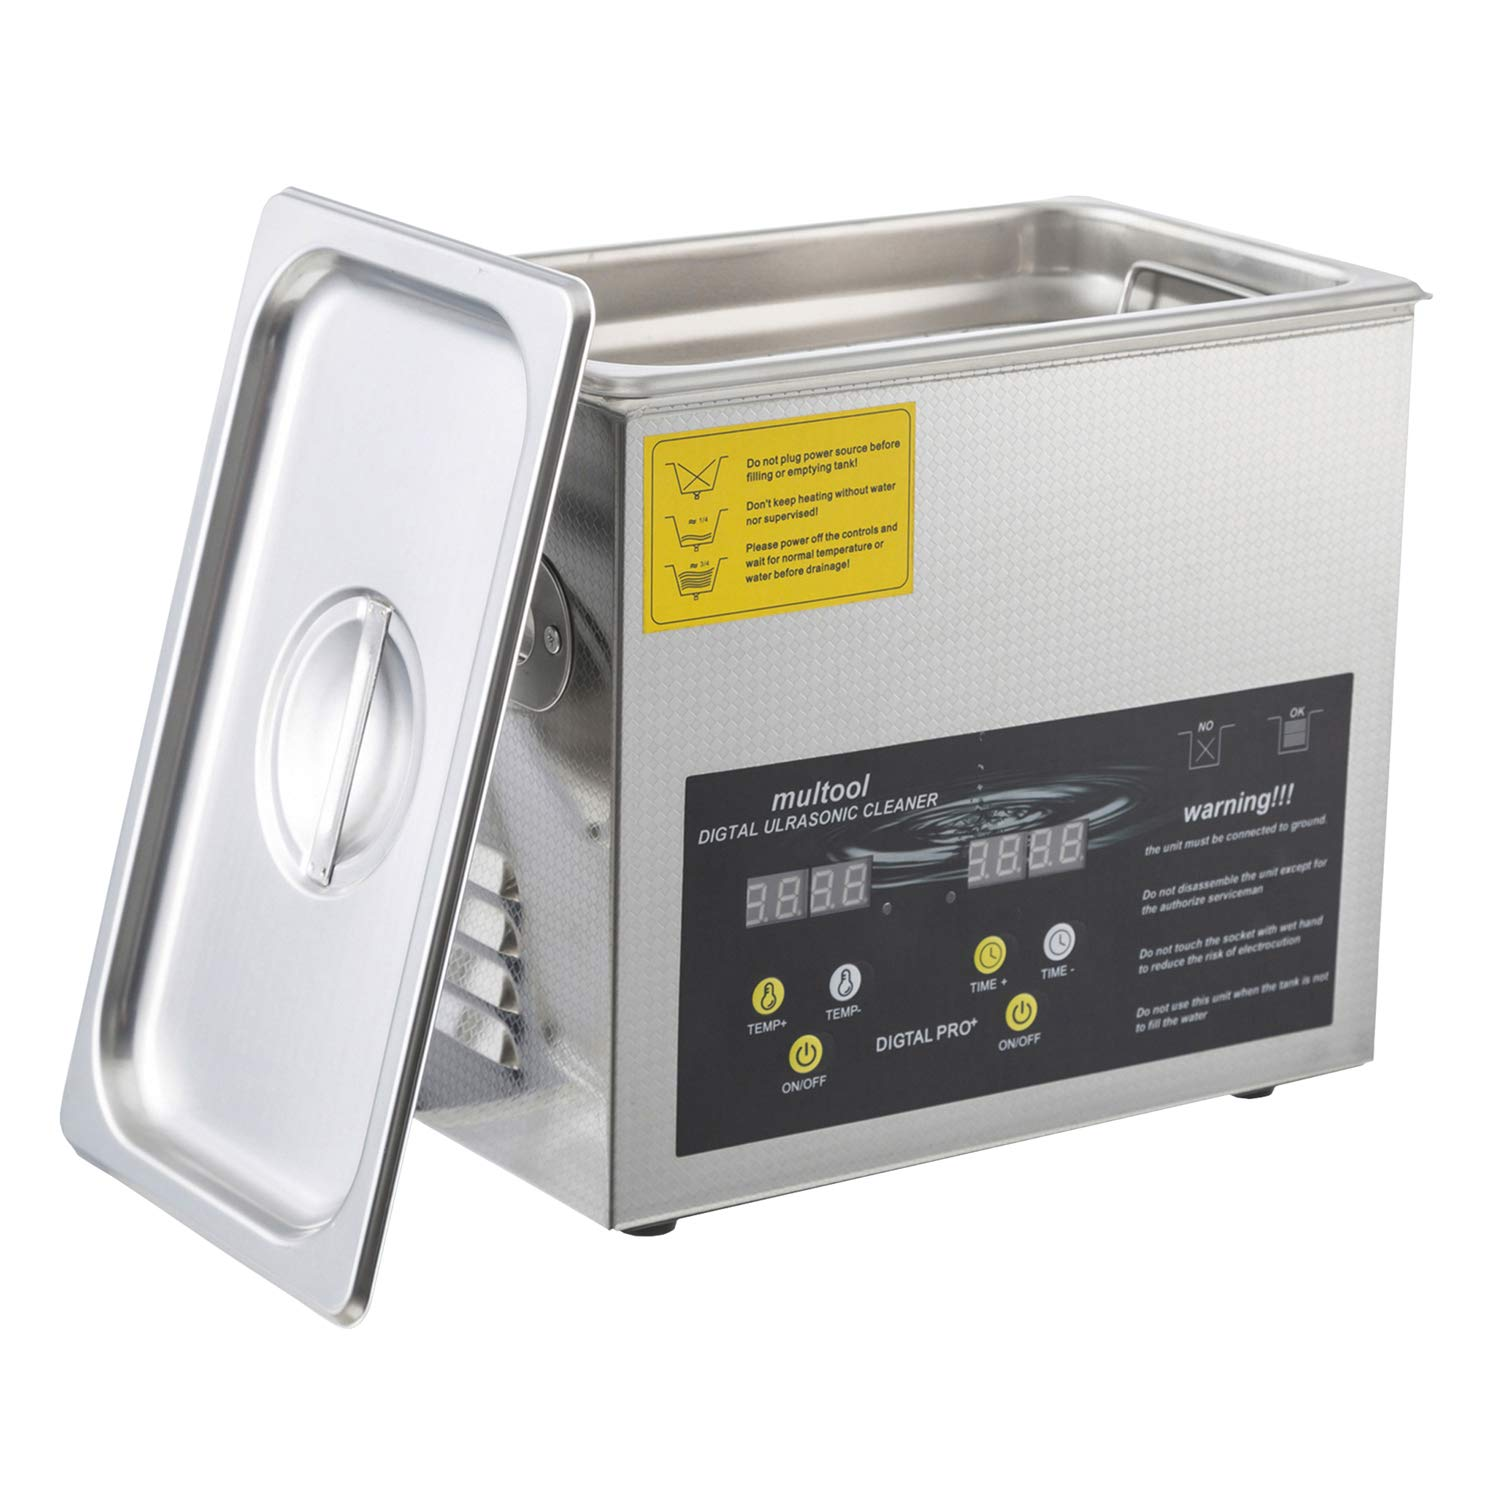 Ultrasonic Cleaner 3L with Heater and Timer Ideal for Cleaning Jewelry Glasses Watch Bands Bike Parts by C2O